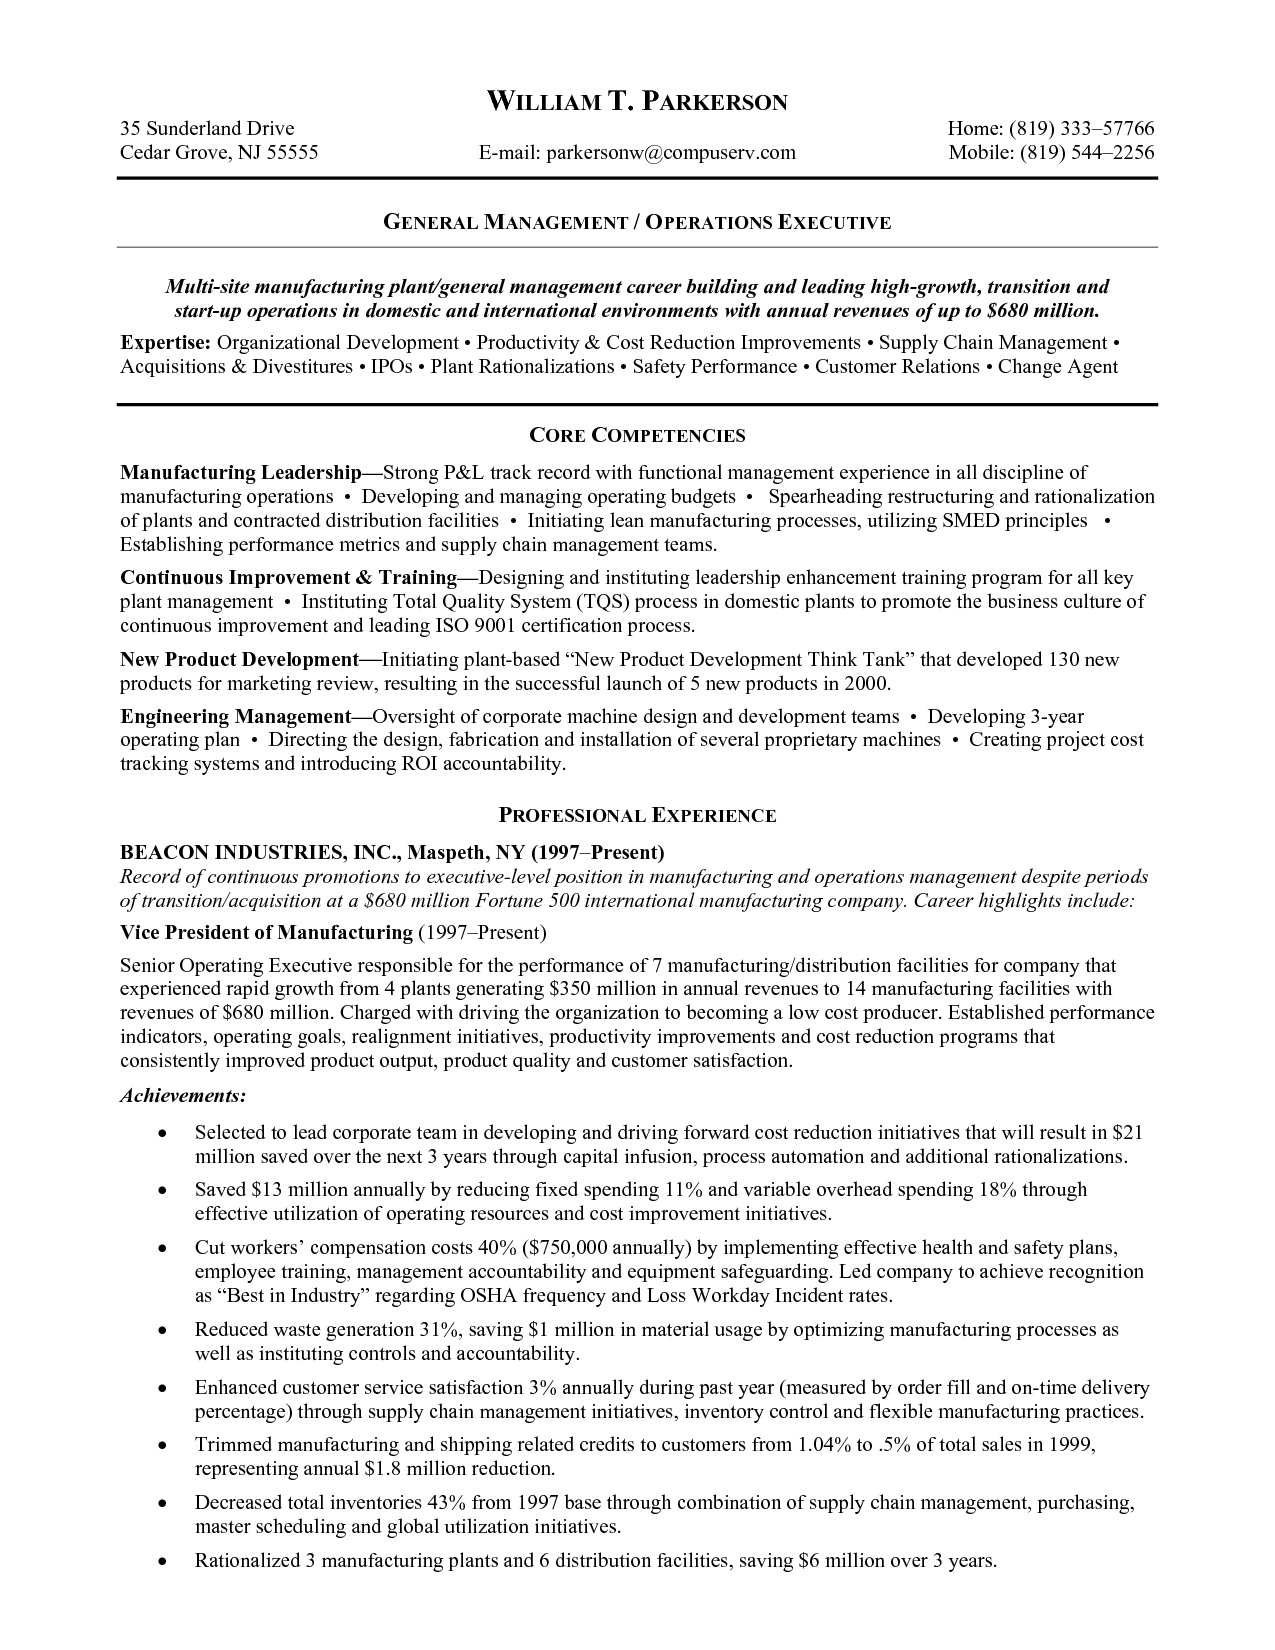 Objective Examples For Resume General Manufacturing Resume Samples Objective Examples Free Edit